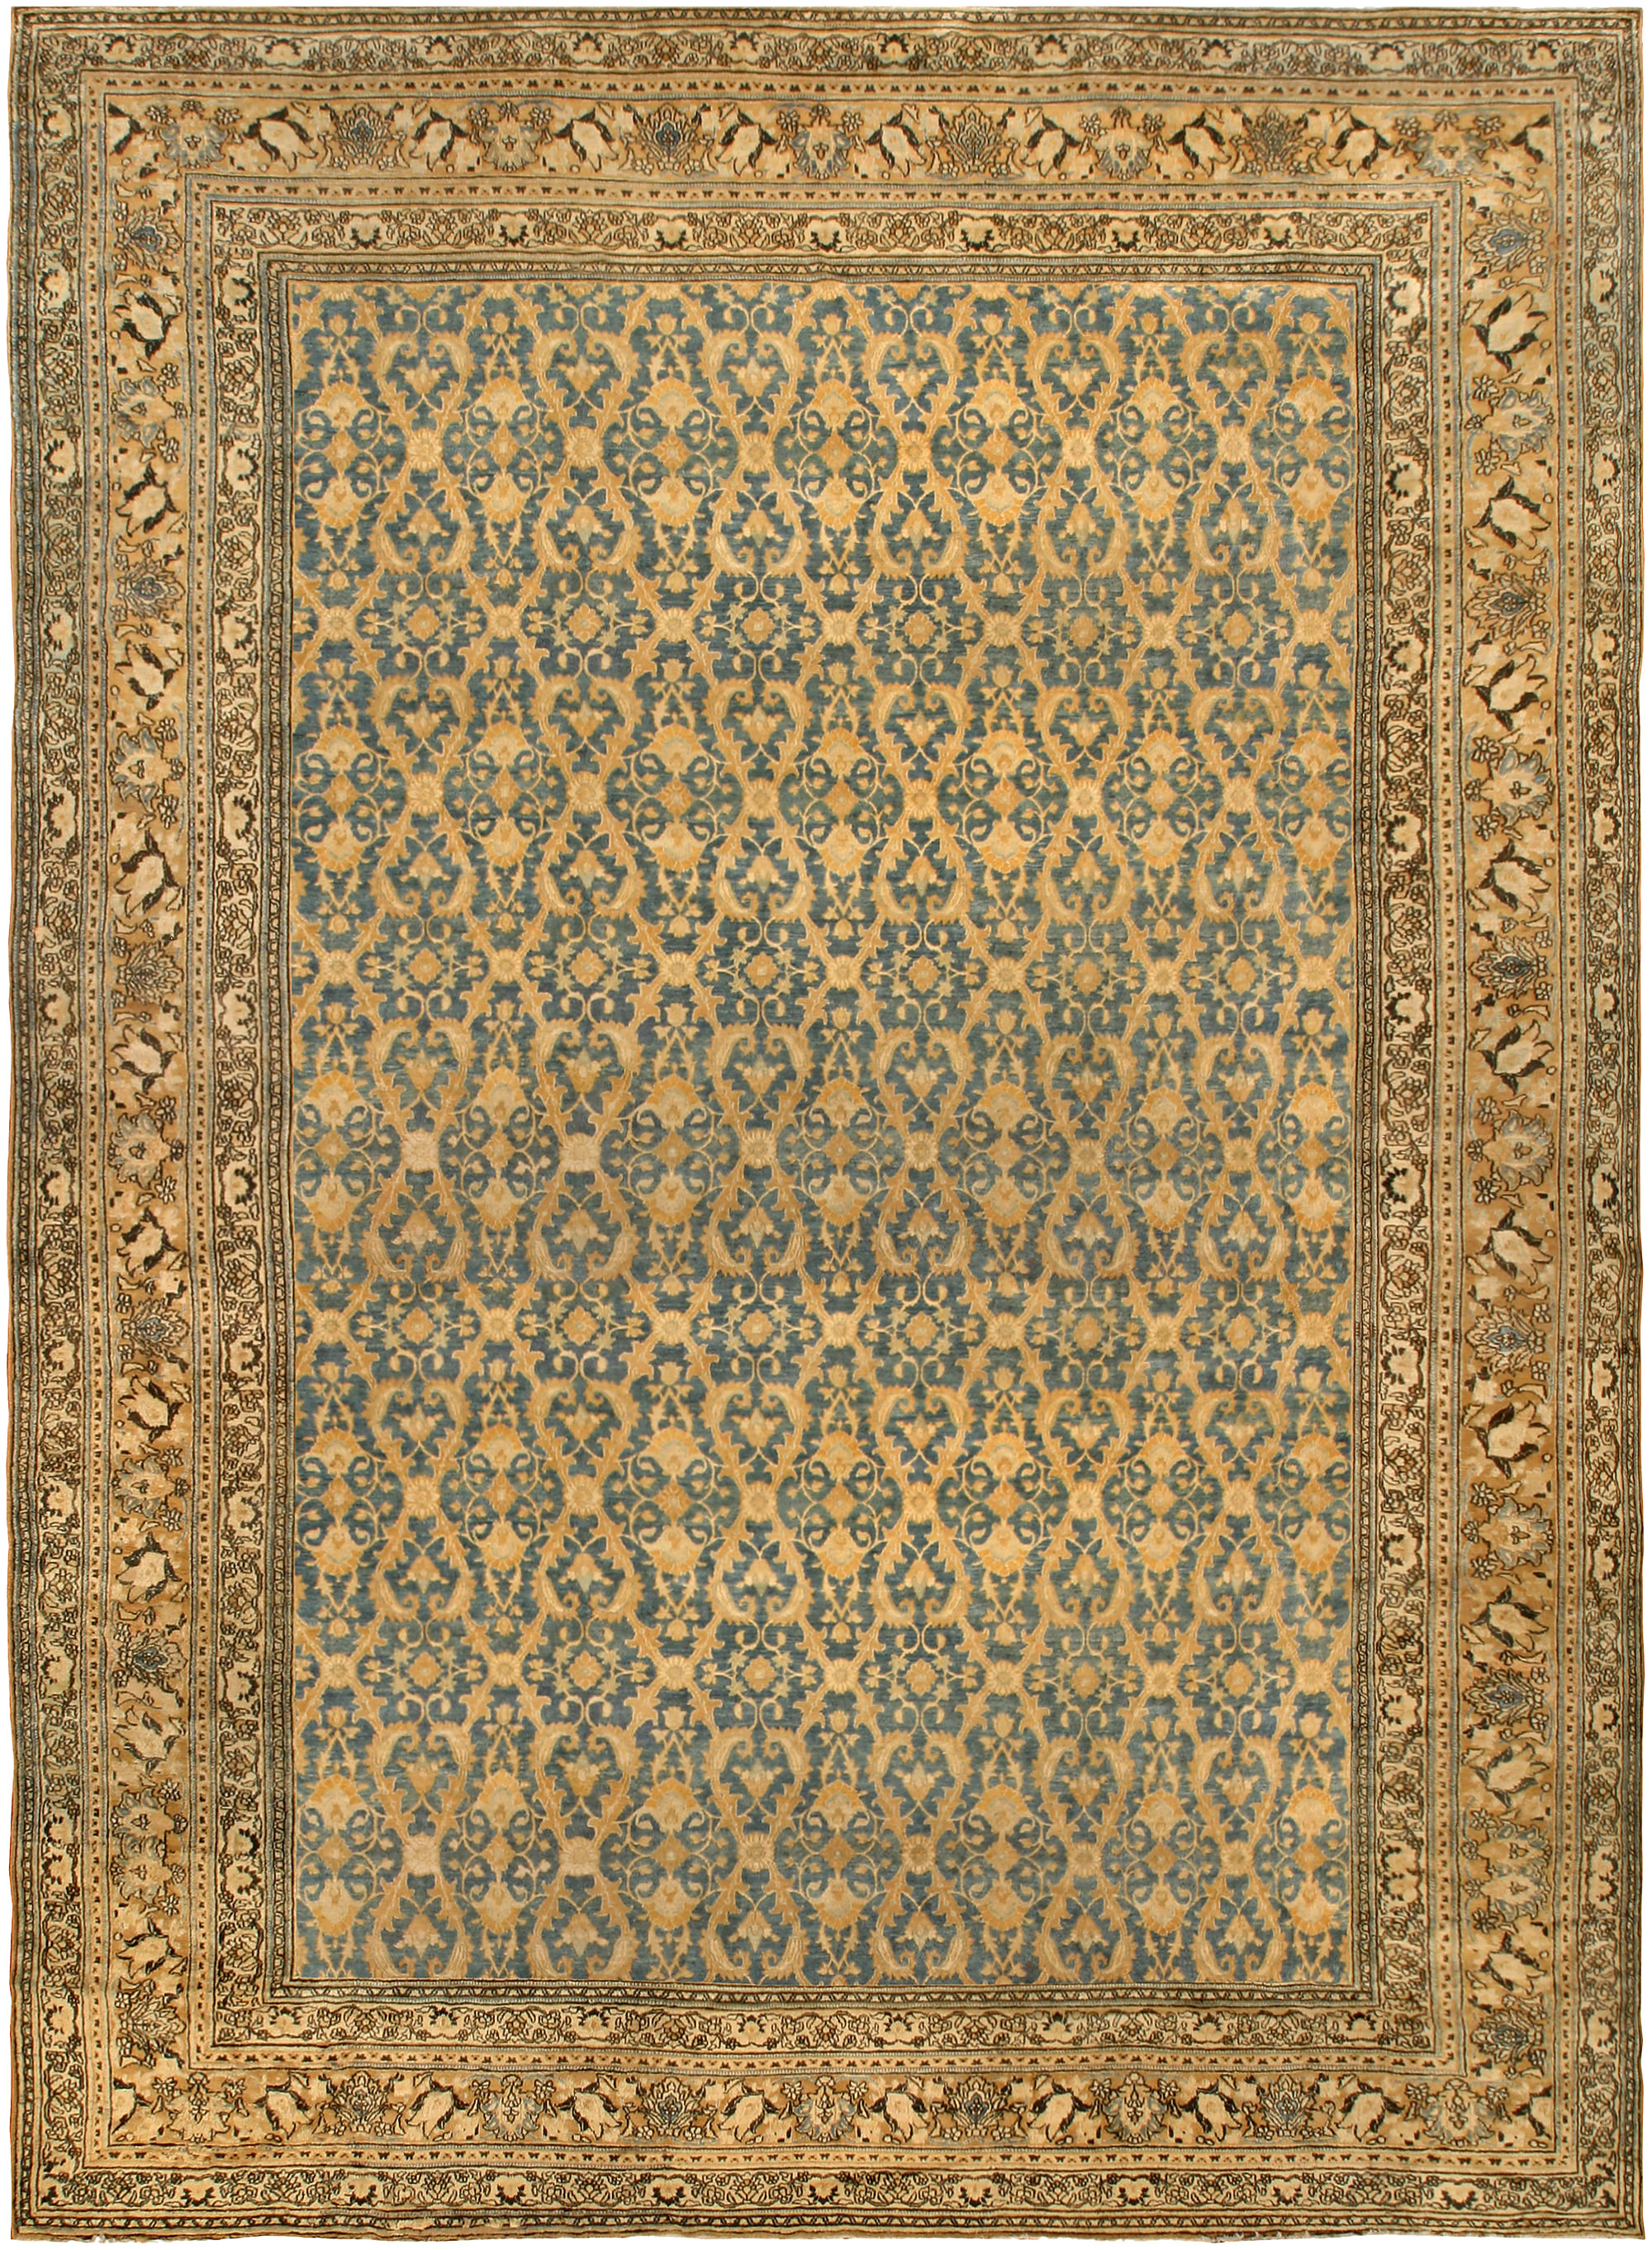 antique rugs persian khorassan RTEUJPC